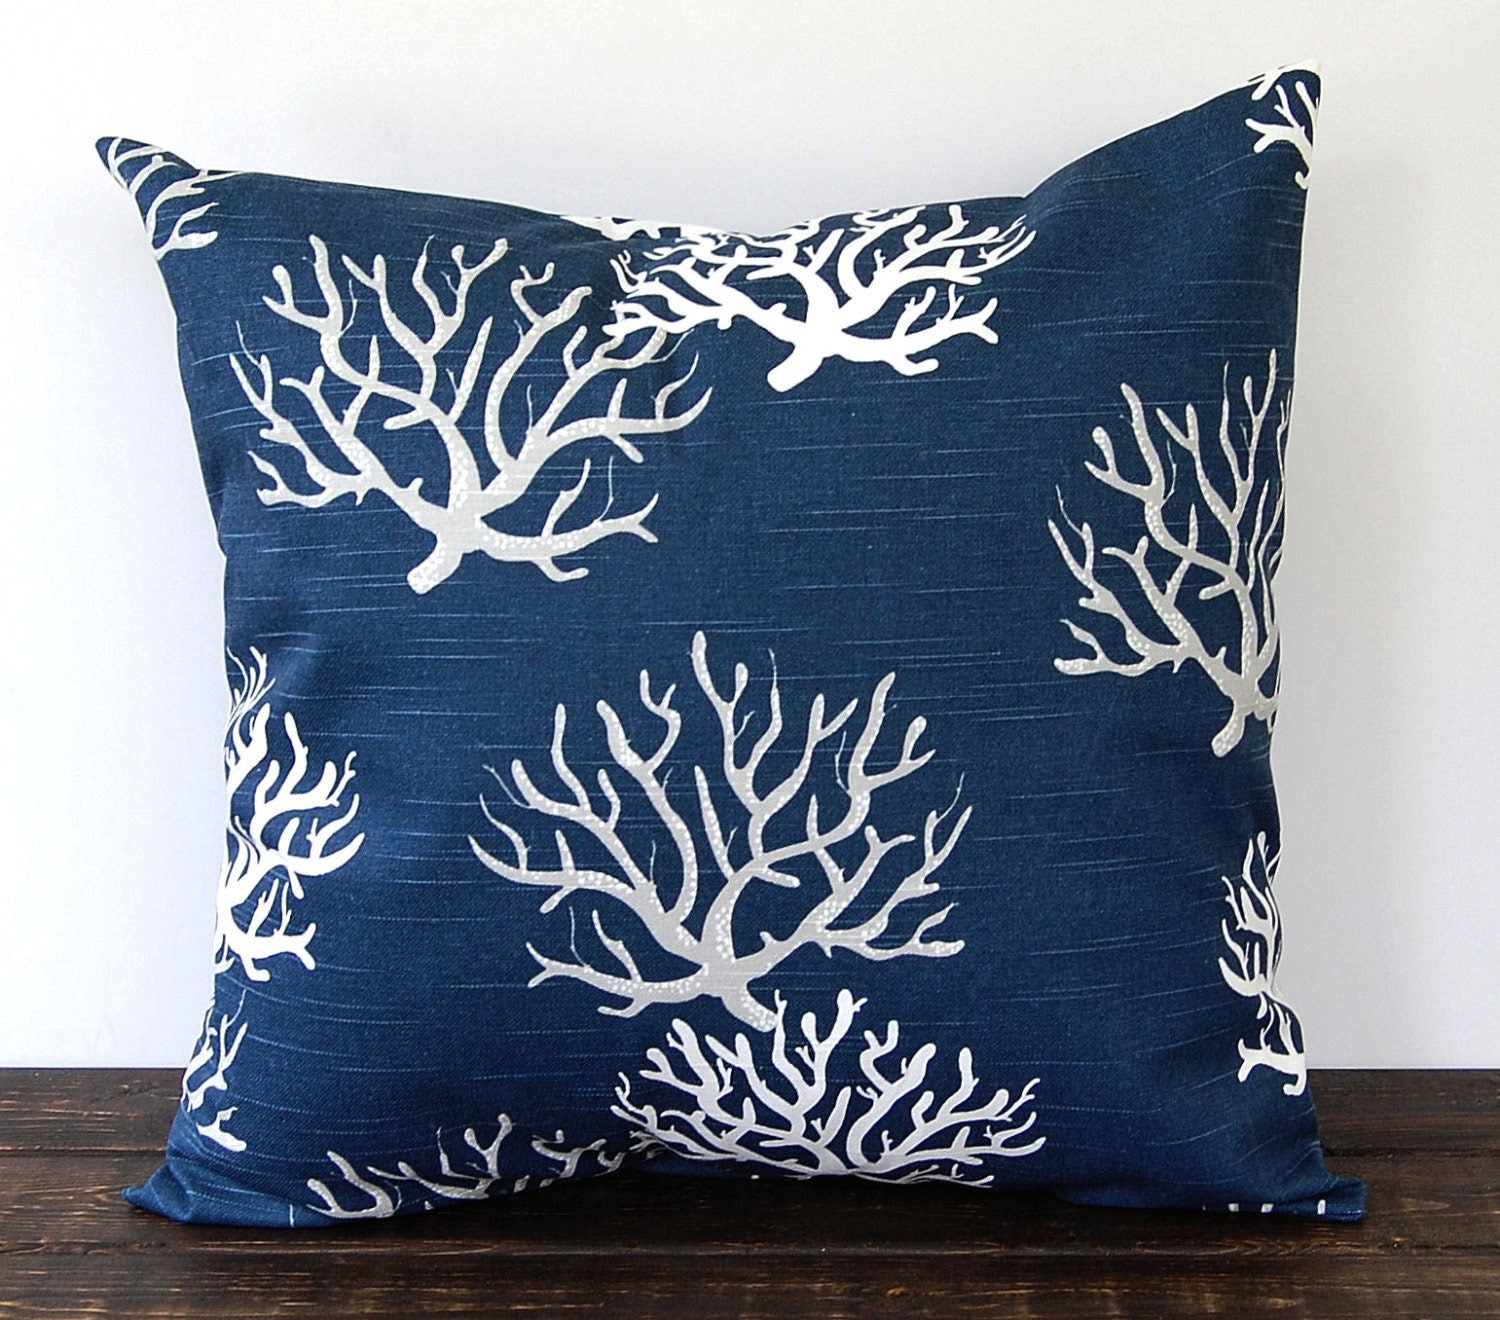 Popular items for anchor pillow on Etsy